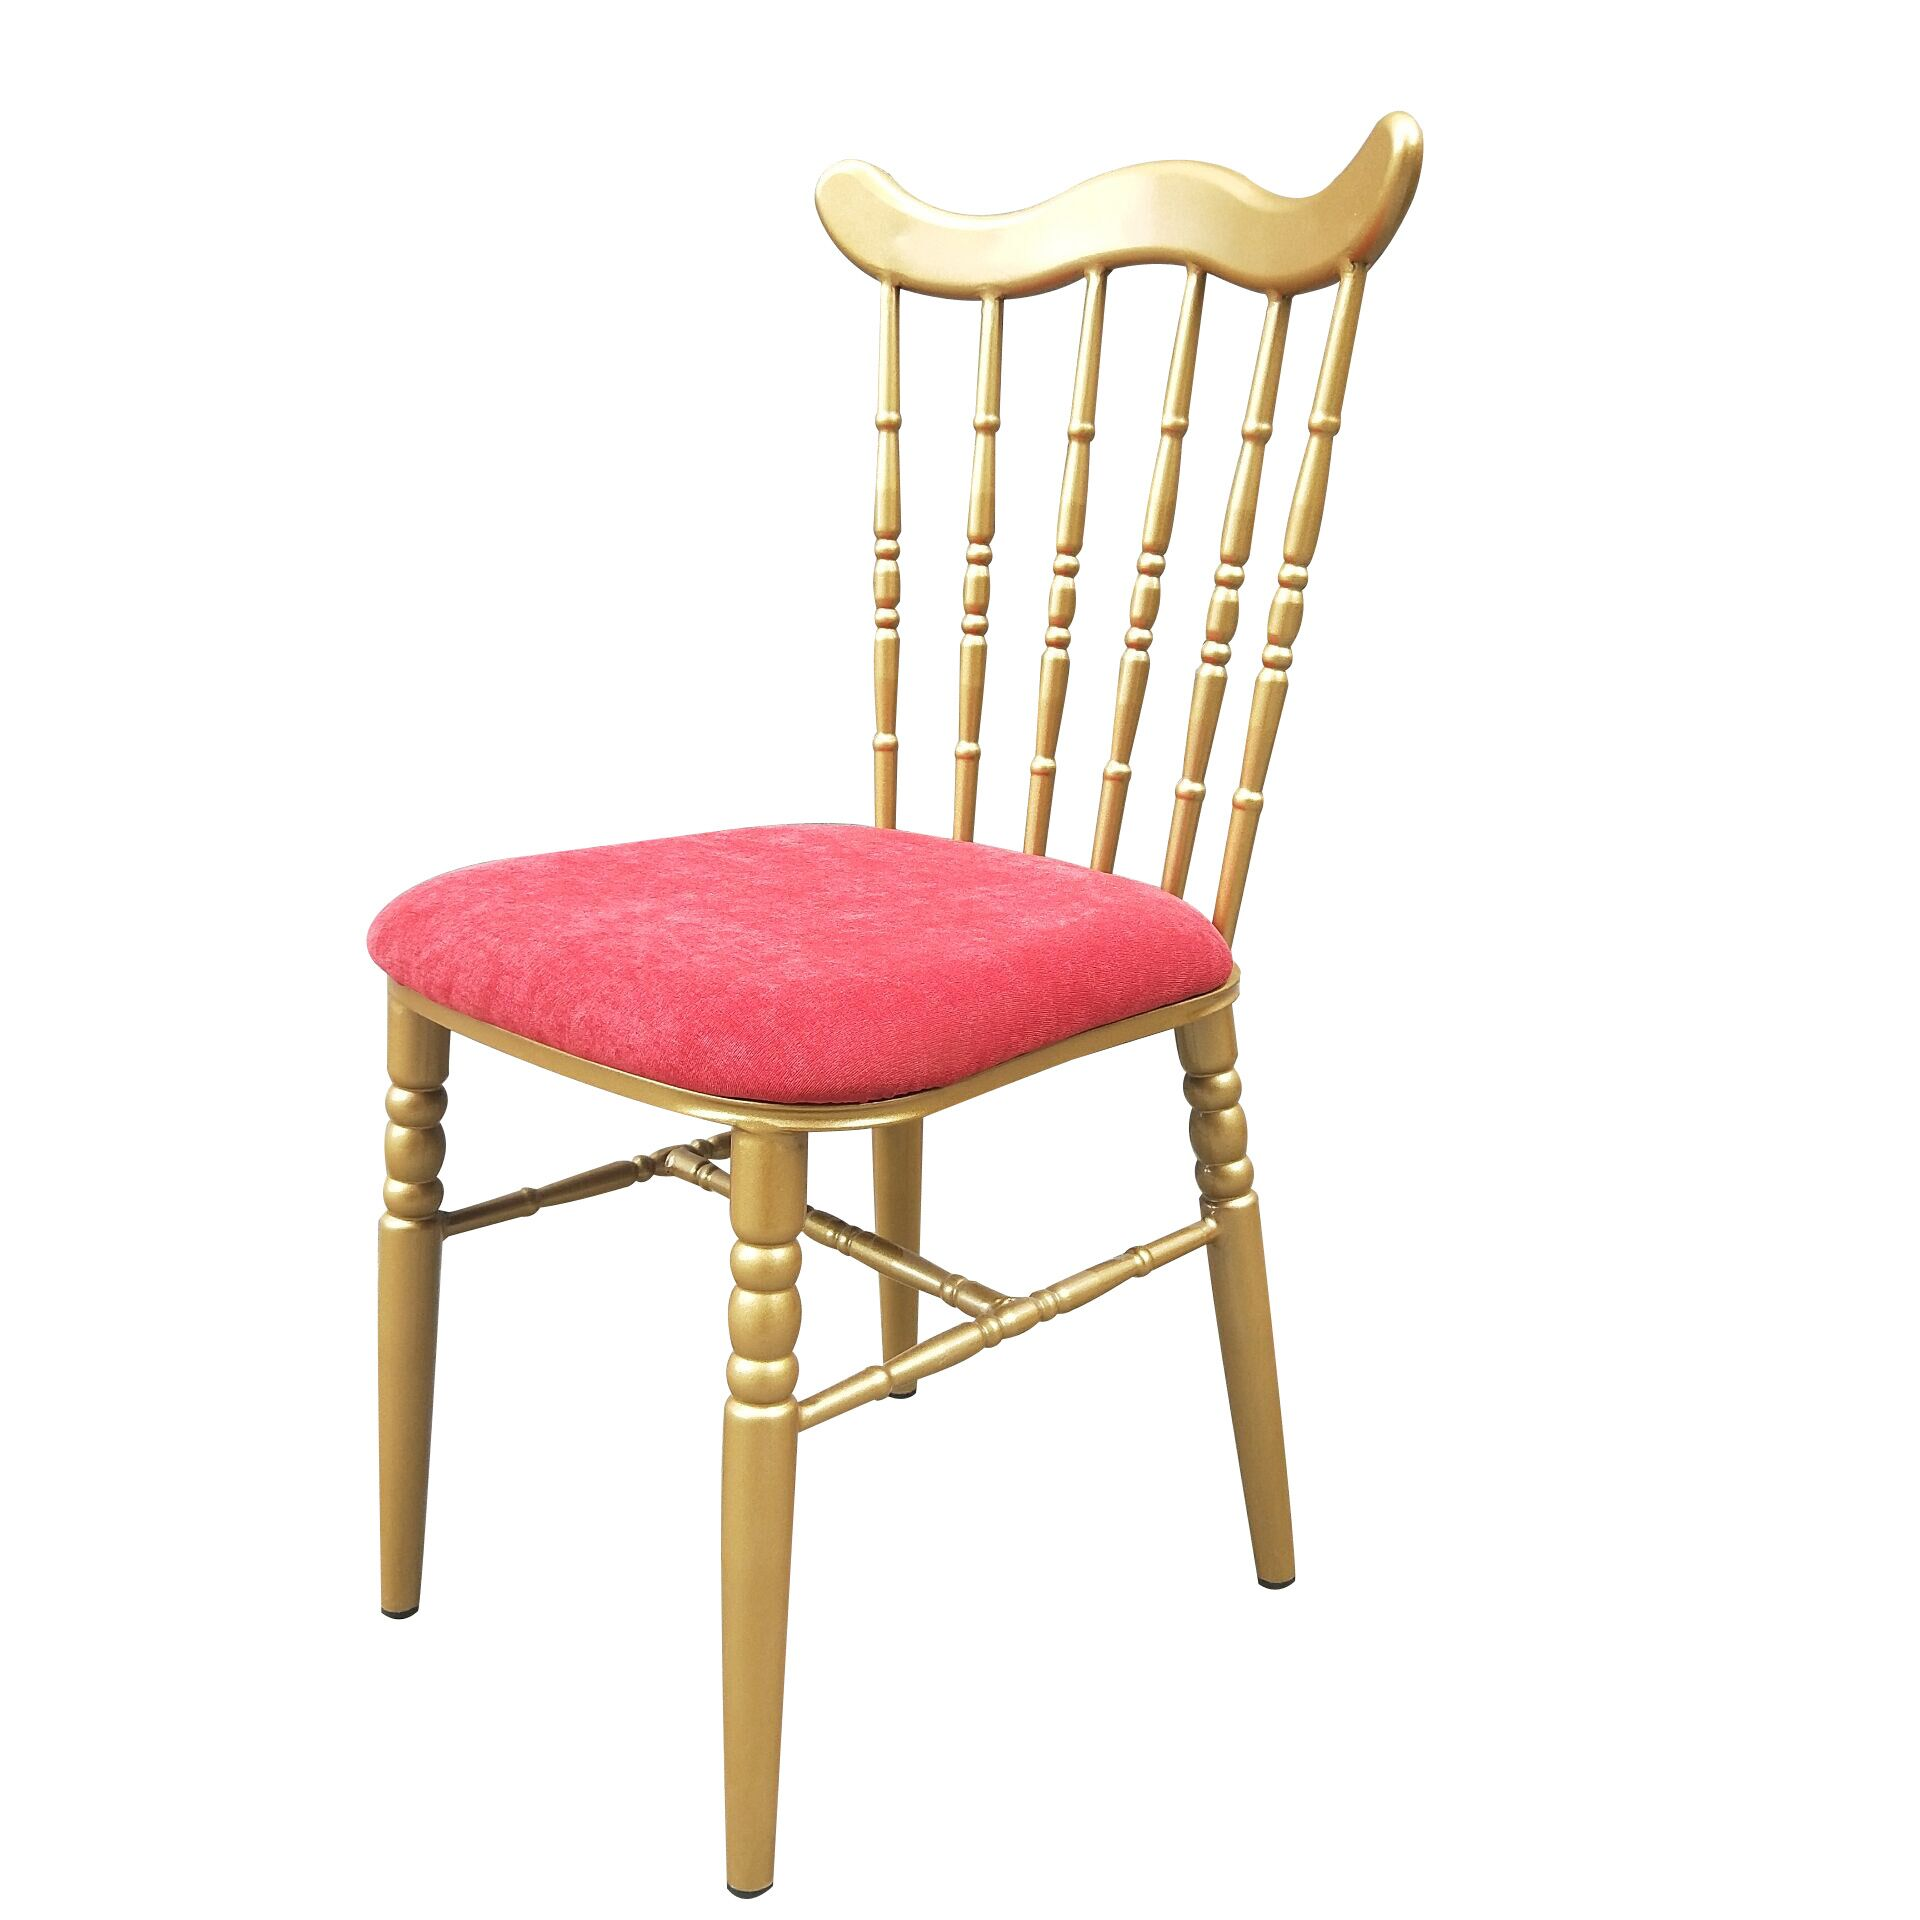 Factory making Dining Chairs -